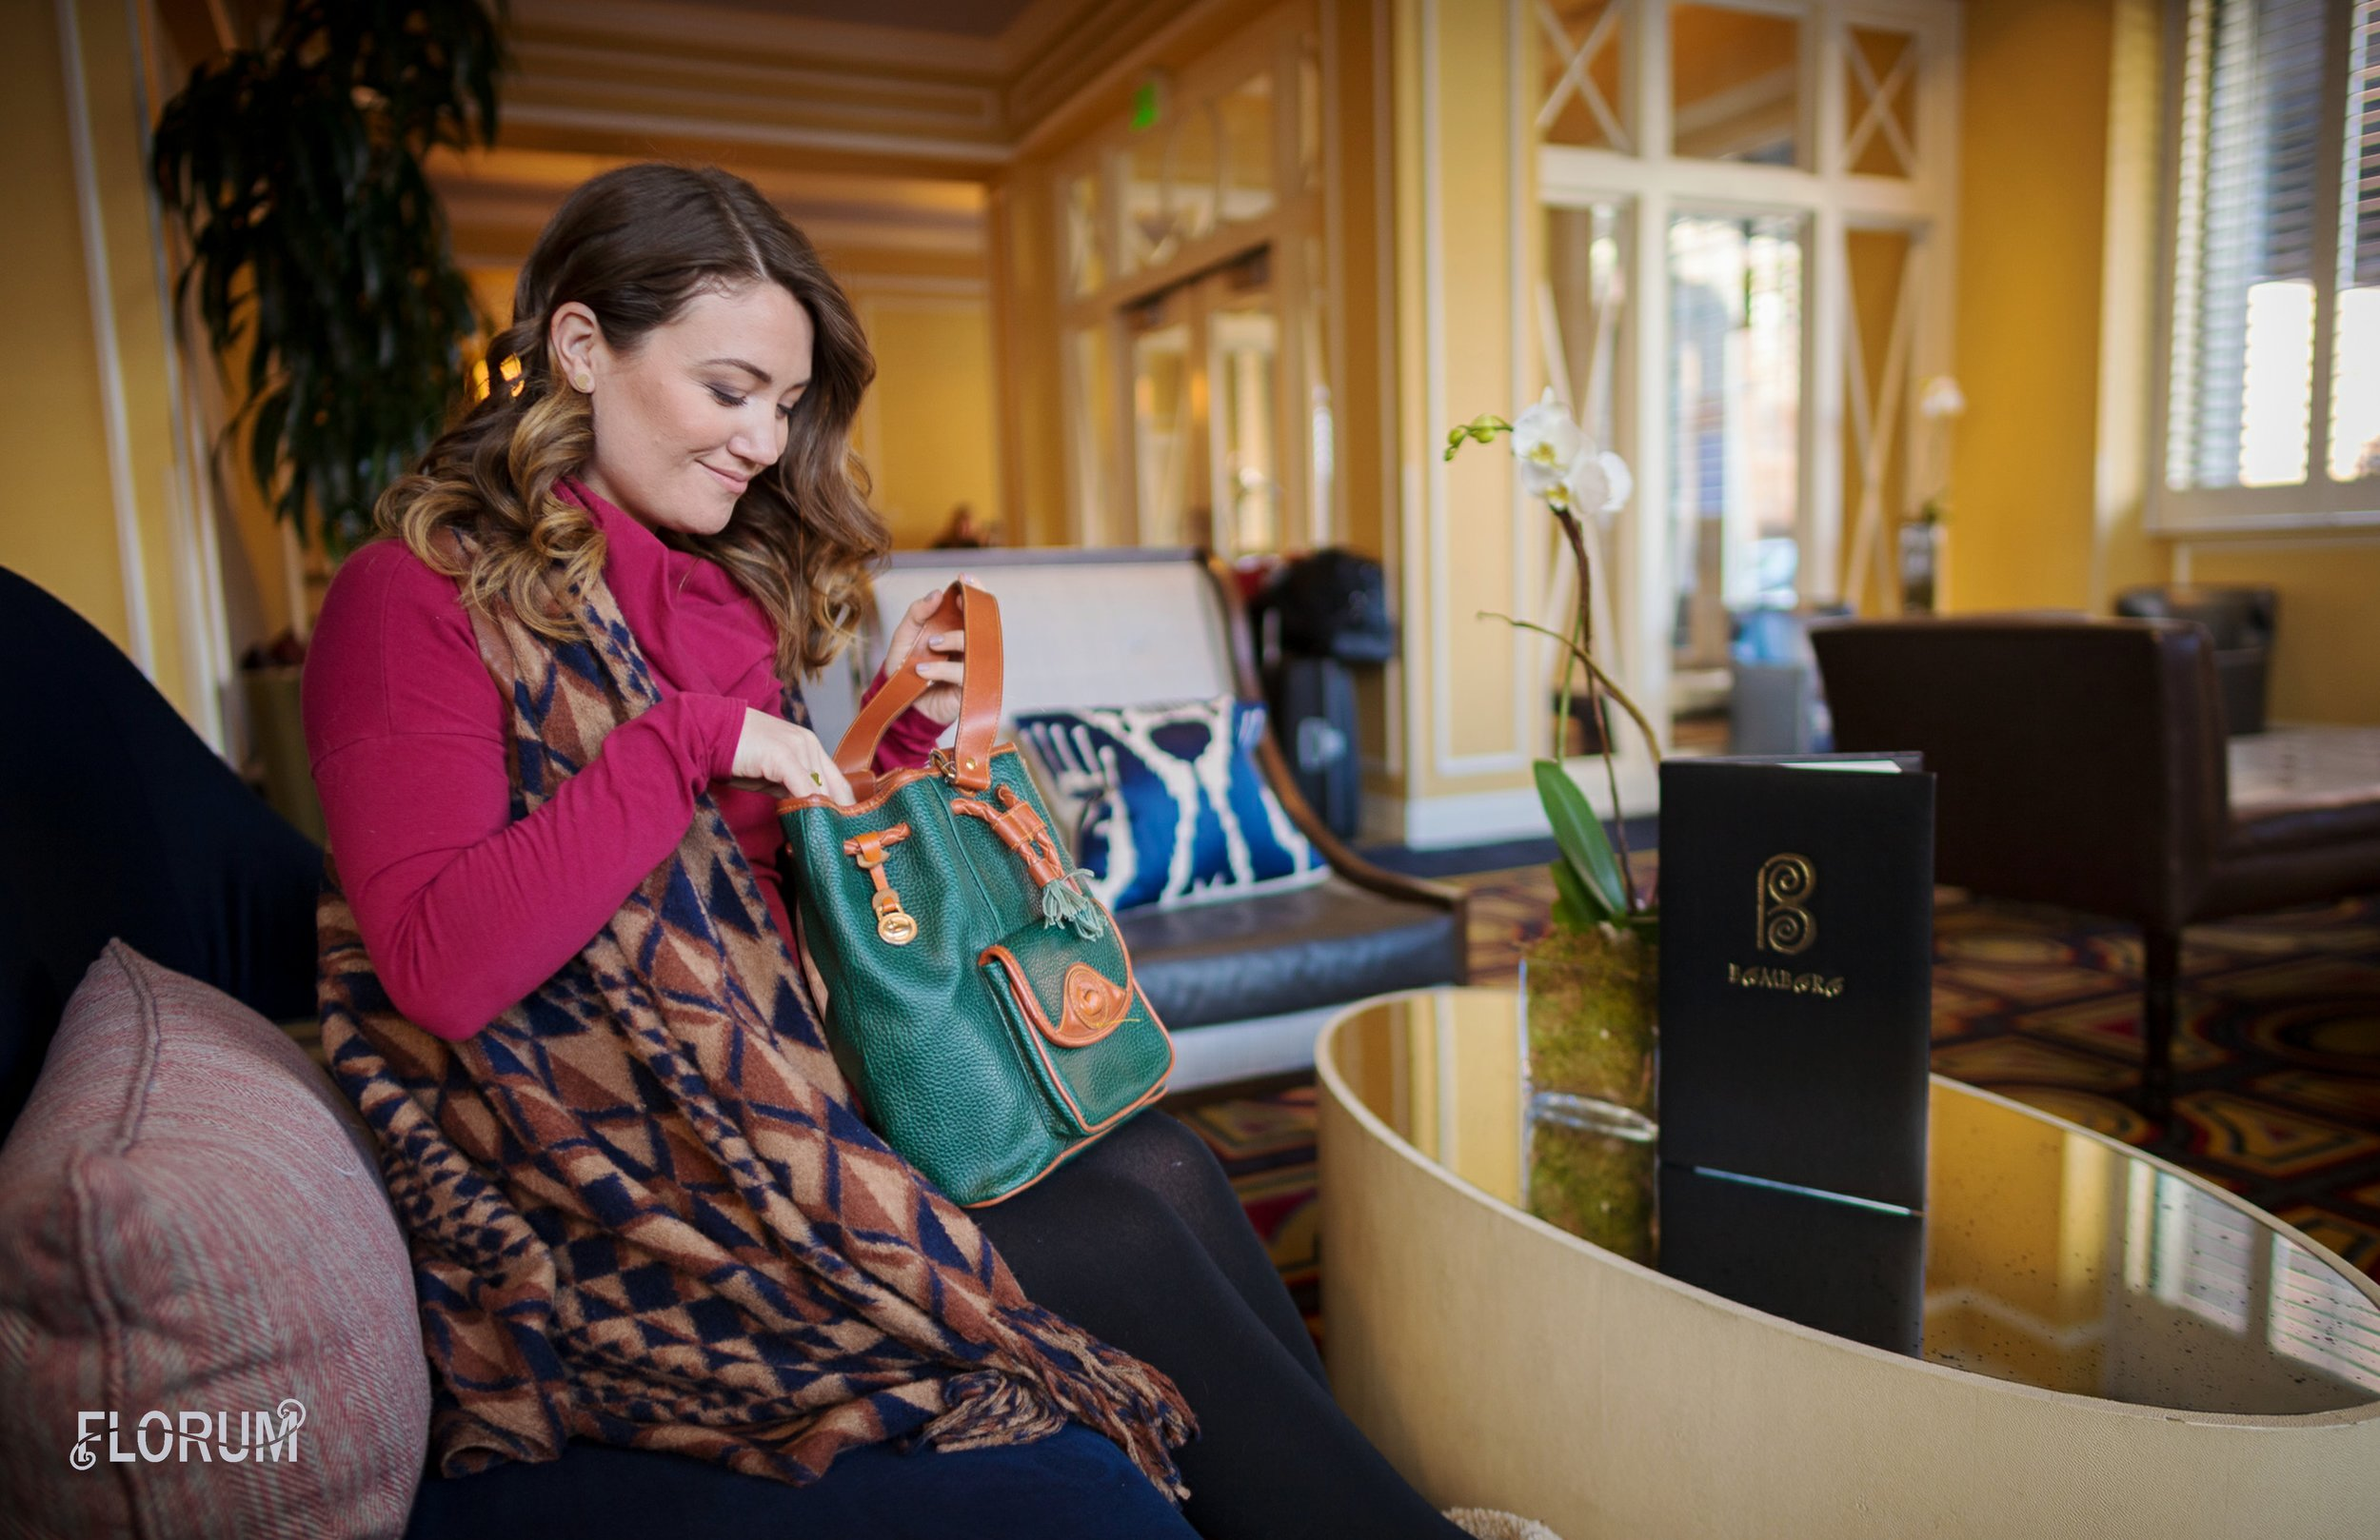 All Kimpton Hotels including Hotel Monaco in Salt Lake City are certified by the Green Key Eco-Rating Program and TripAdvisor GreenLeaders Program. Their commitment to environmental sustainability includes the use of nontoxic cleaning products, extensive recycling program, minimizing water consumption, and serving even the little things like organic coffee and biodegradable water cups in the lobby.